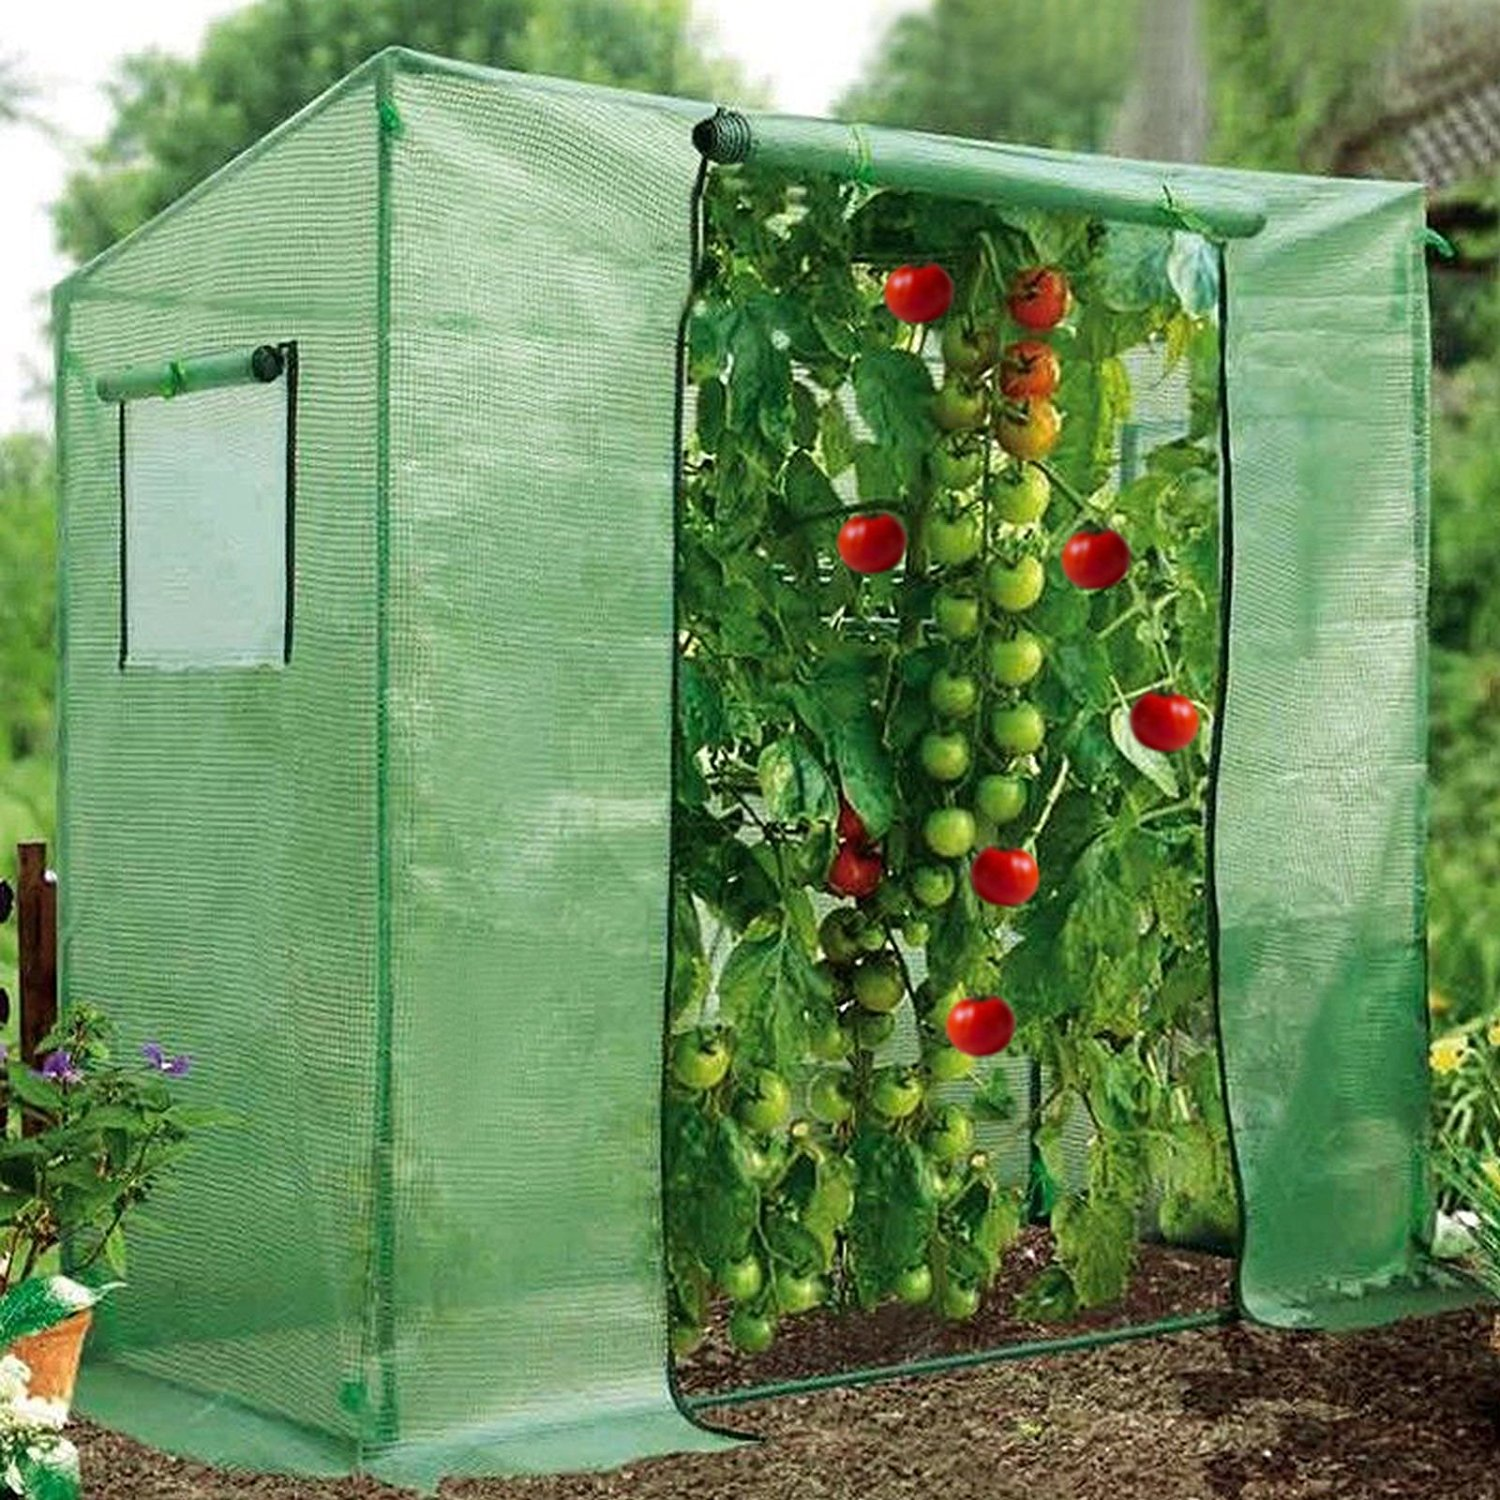 7' x3' x6' Tomato Walking-in Greenhouse Outdoor Plant Gardening Green House by Supplier Generic